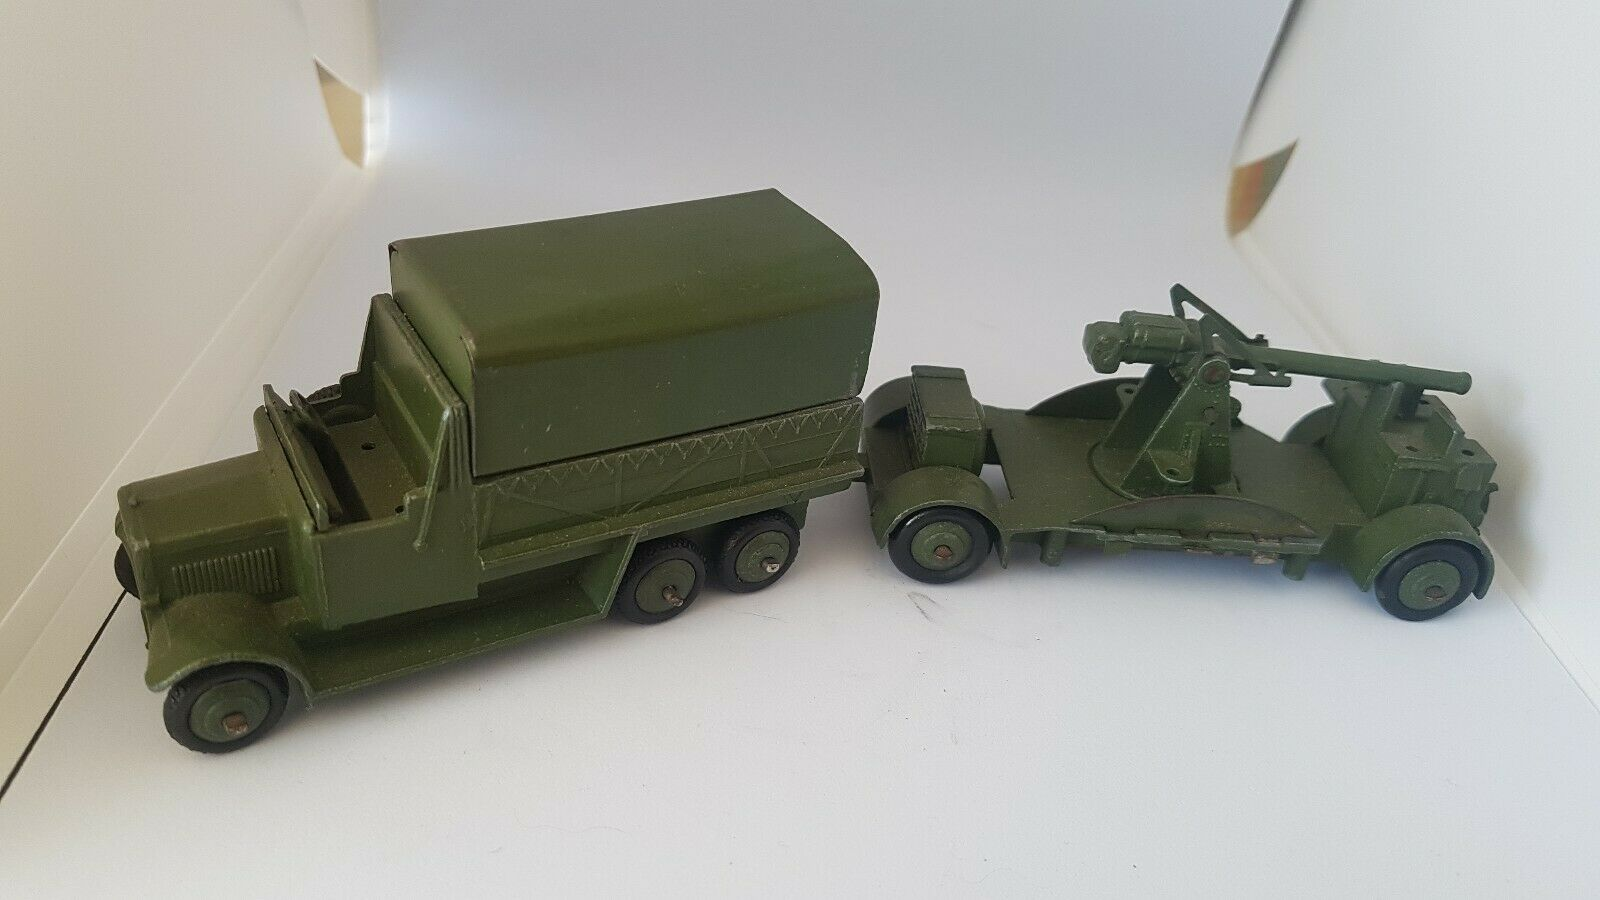 Authentic toy dinky toys england  rare military has complete set  meilleure qualité